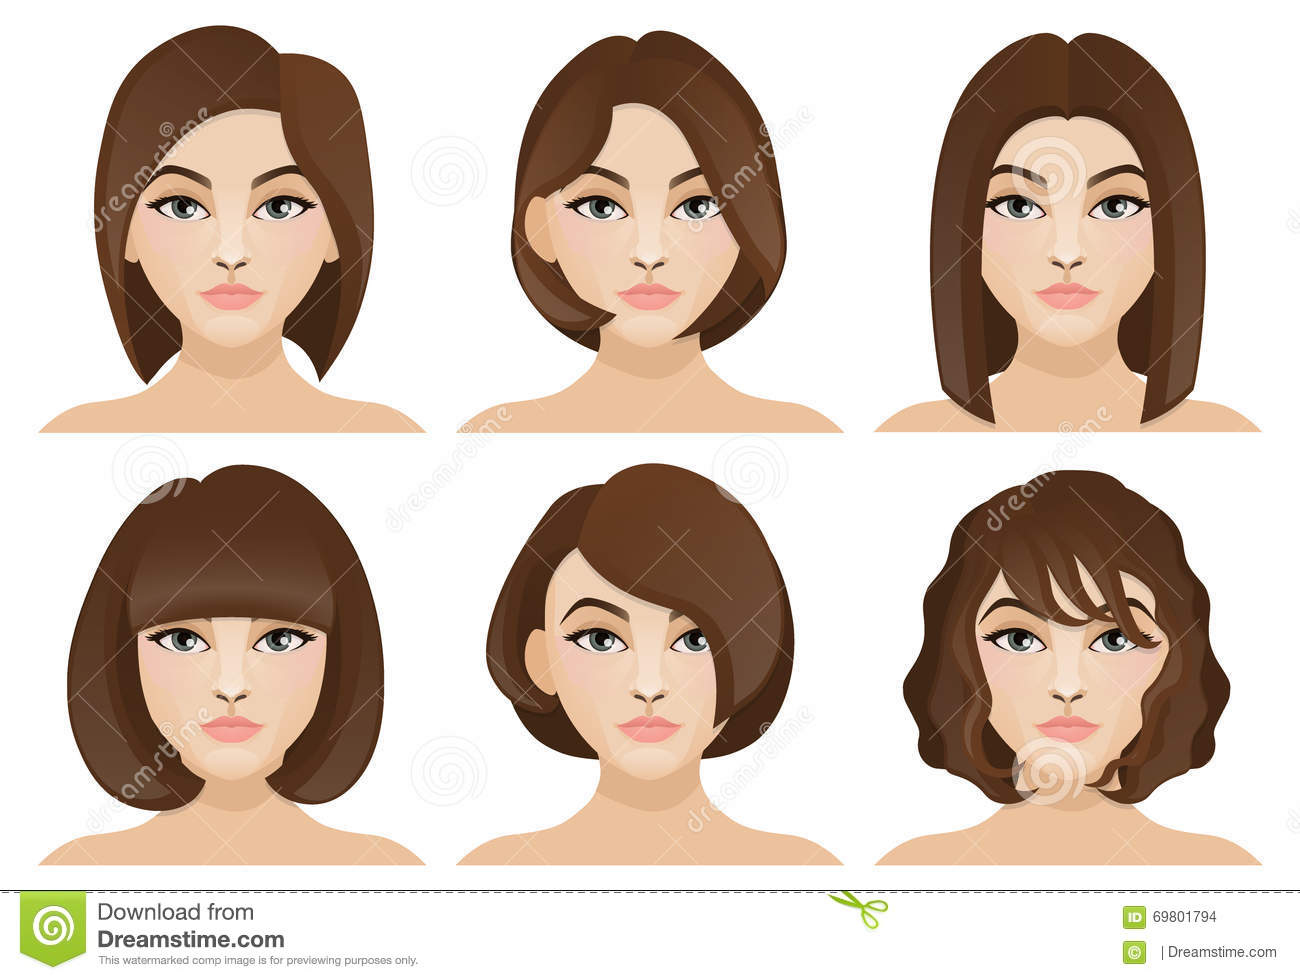 Girl Hairstyles Clipart: Girls With Short Hair Stock Vector. Illustration Of Brown